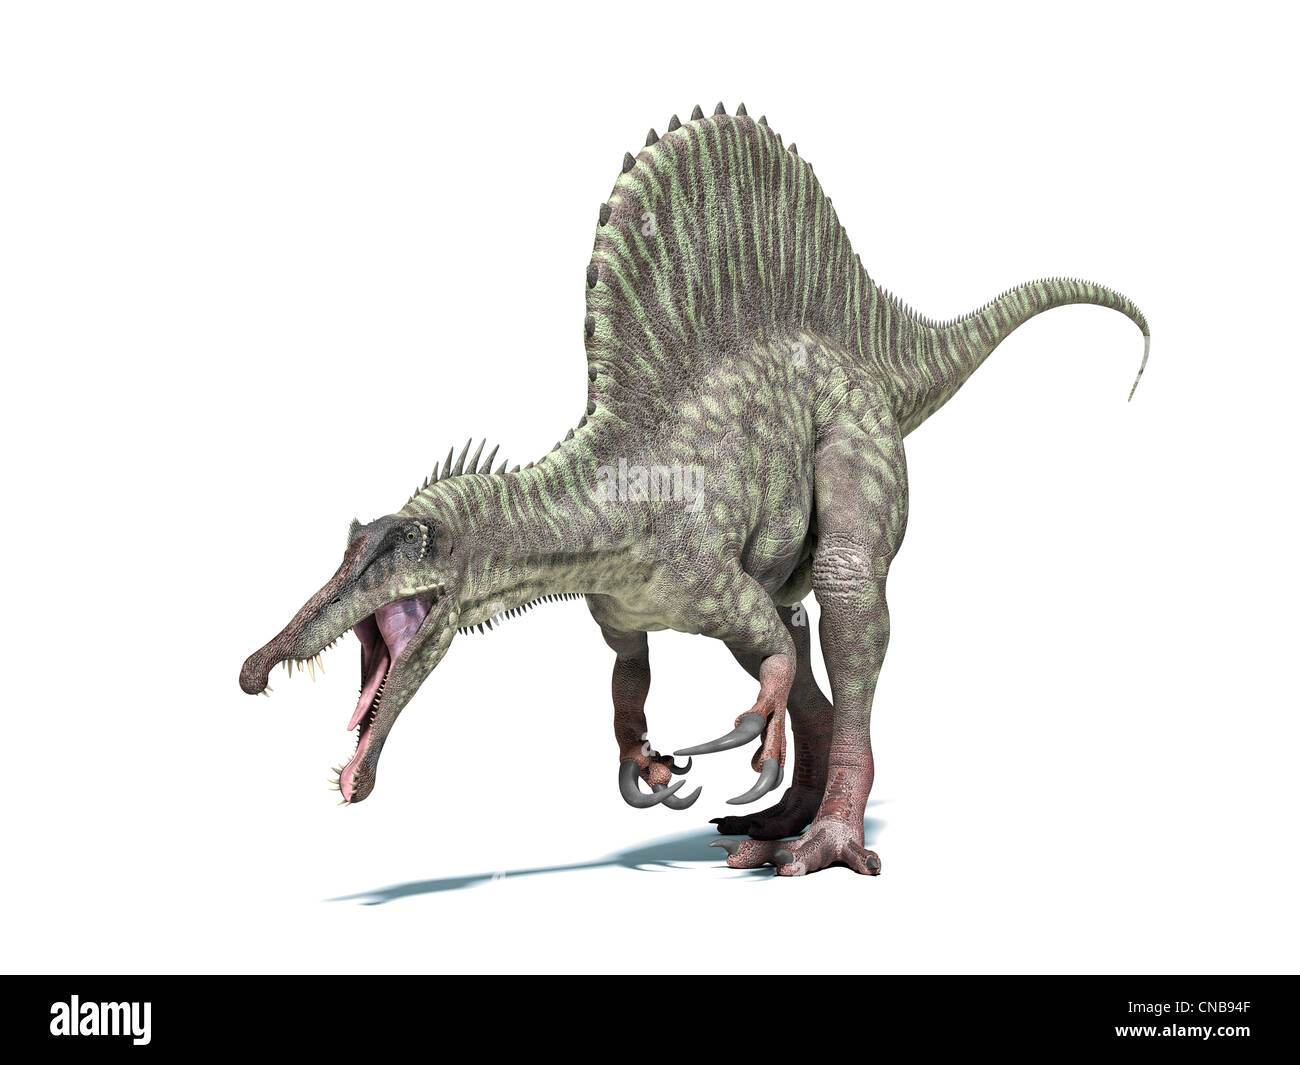 Spinosaurus dinosaur. Very detailed and scientifically correct. Isolated on white background with drop shadow and - Stock Image